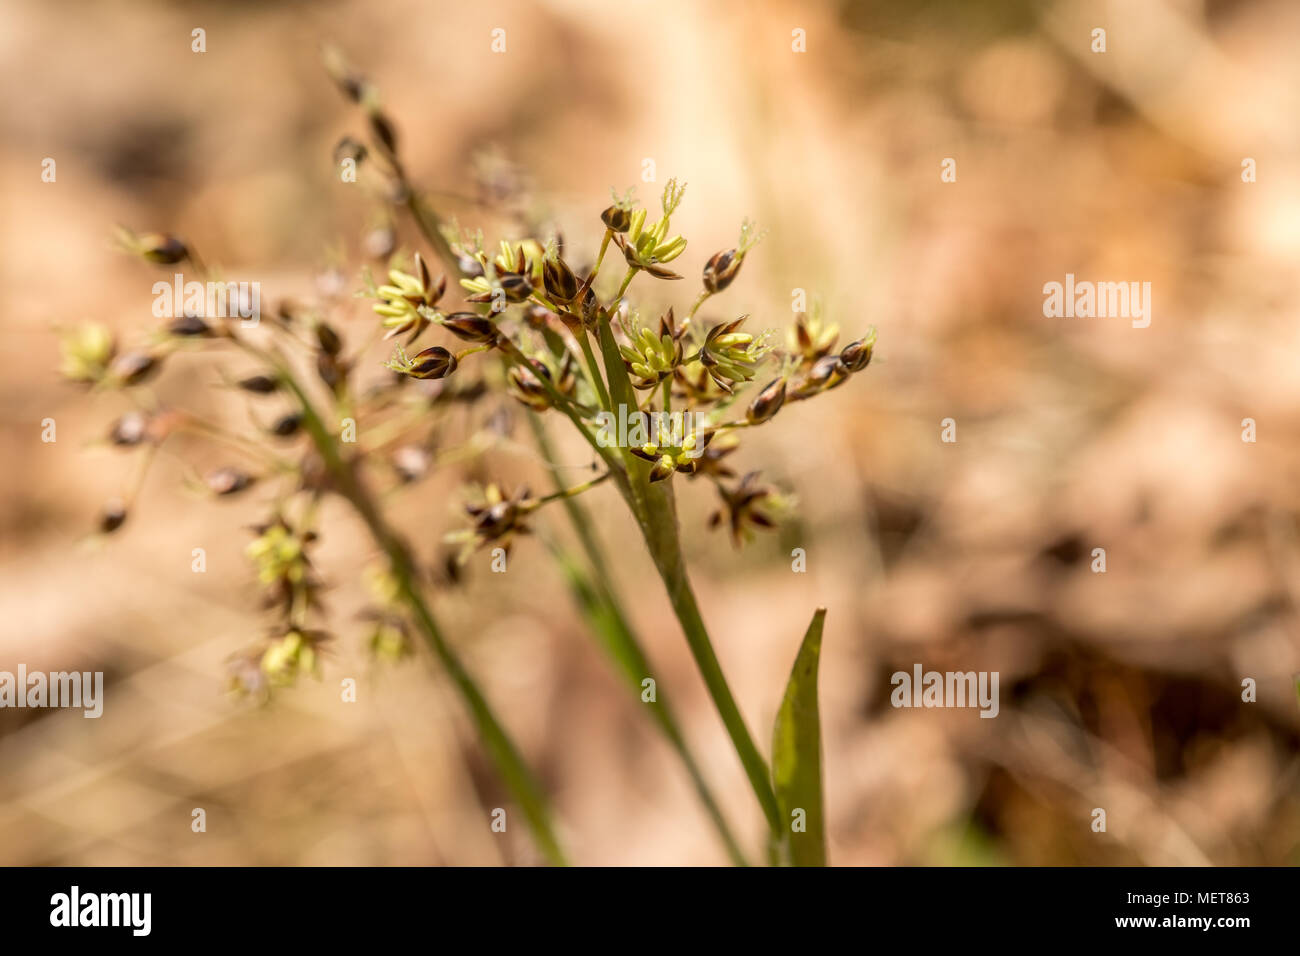 Hairy wood-rush, Luzula pilosa, flowering in april. Norway, Europe. - Stock Image